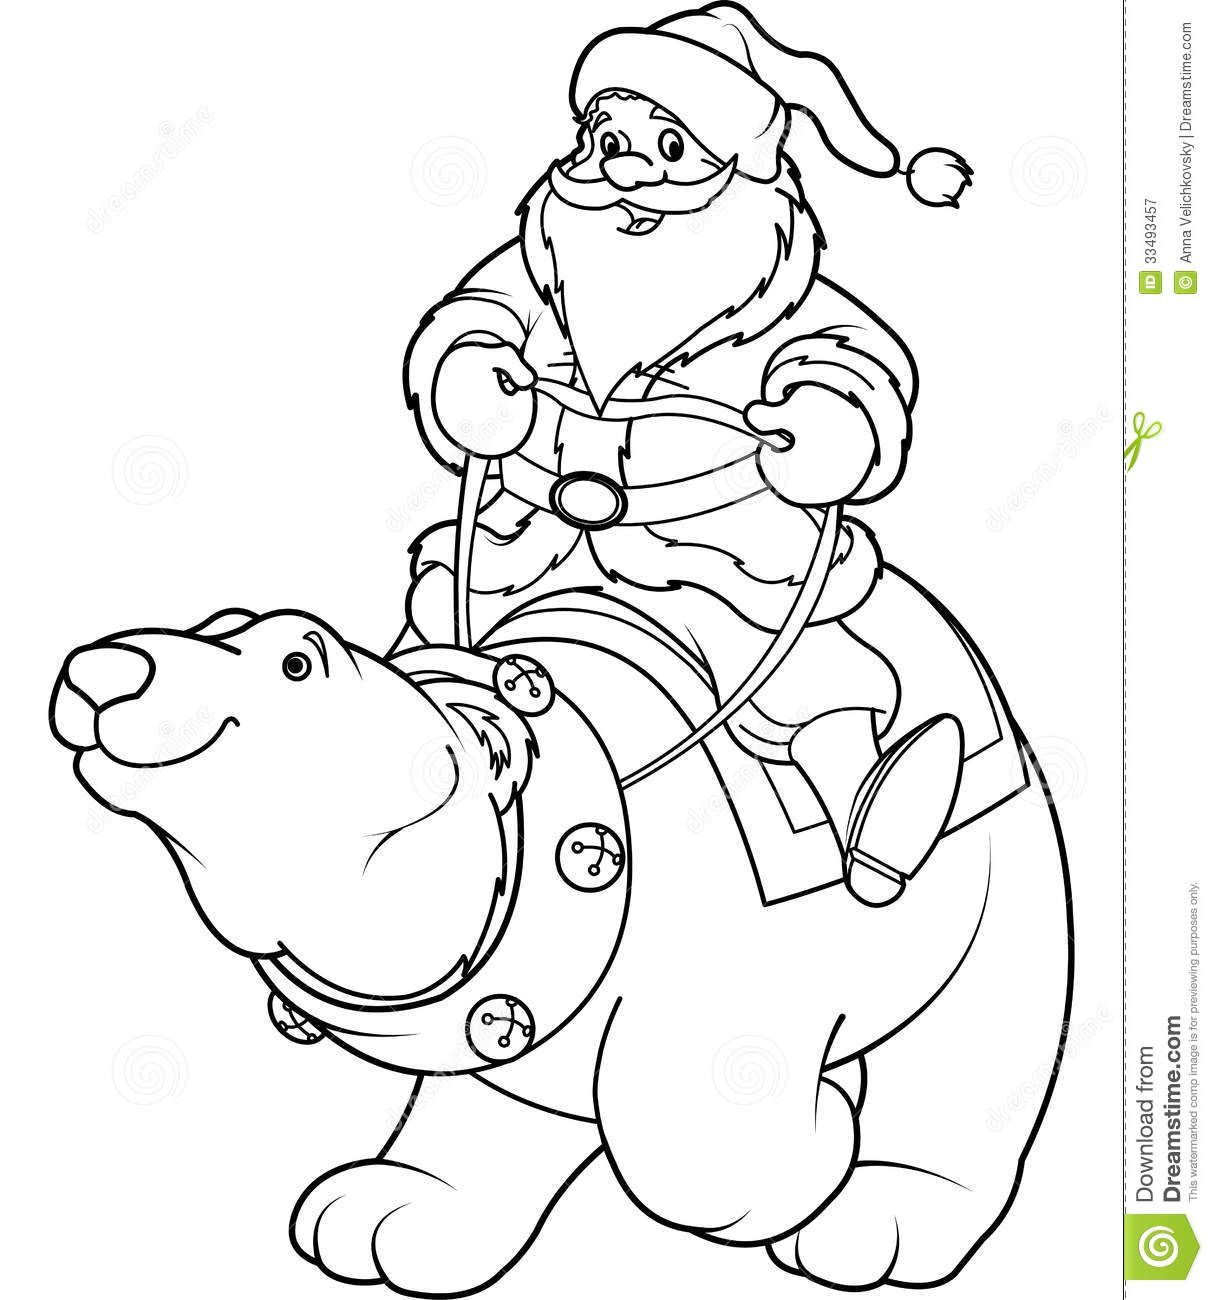 1213x1300 Santa Claus Riding Polar Bear Coloring Page Back Friendly